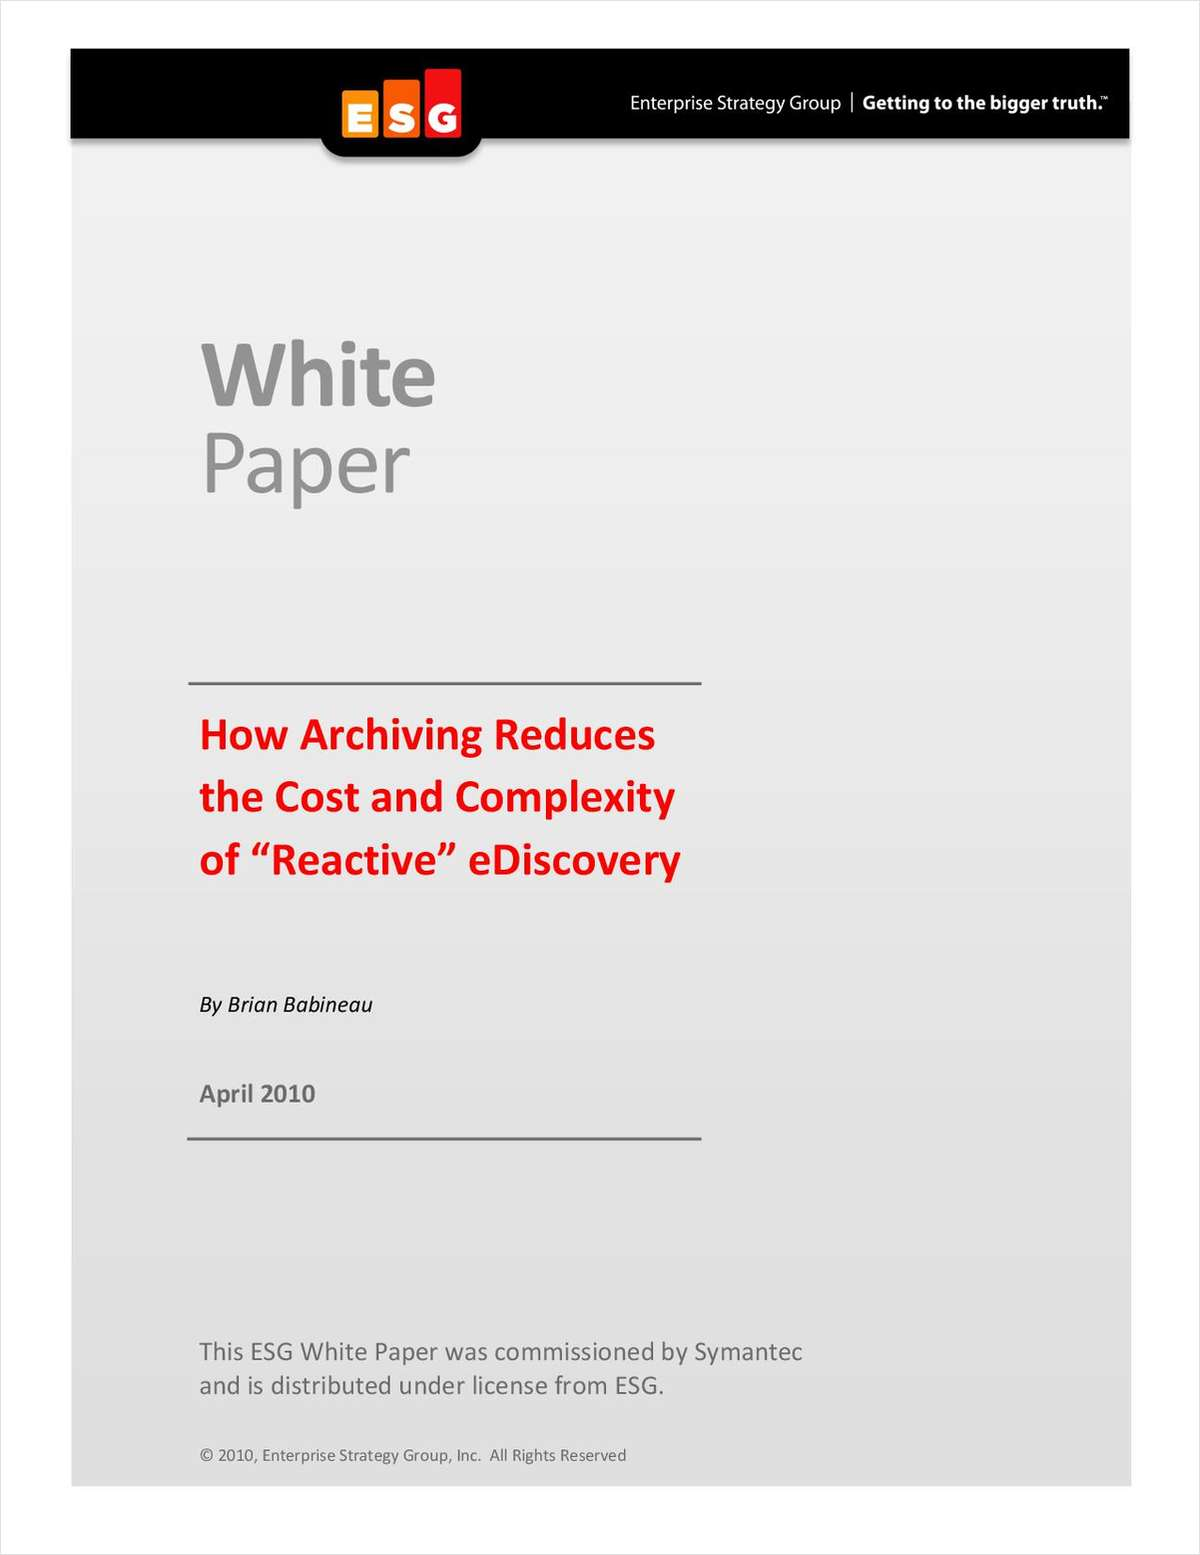 How Archiving Reduces the Cost and Complexity of 'Reactive' eDiscovery